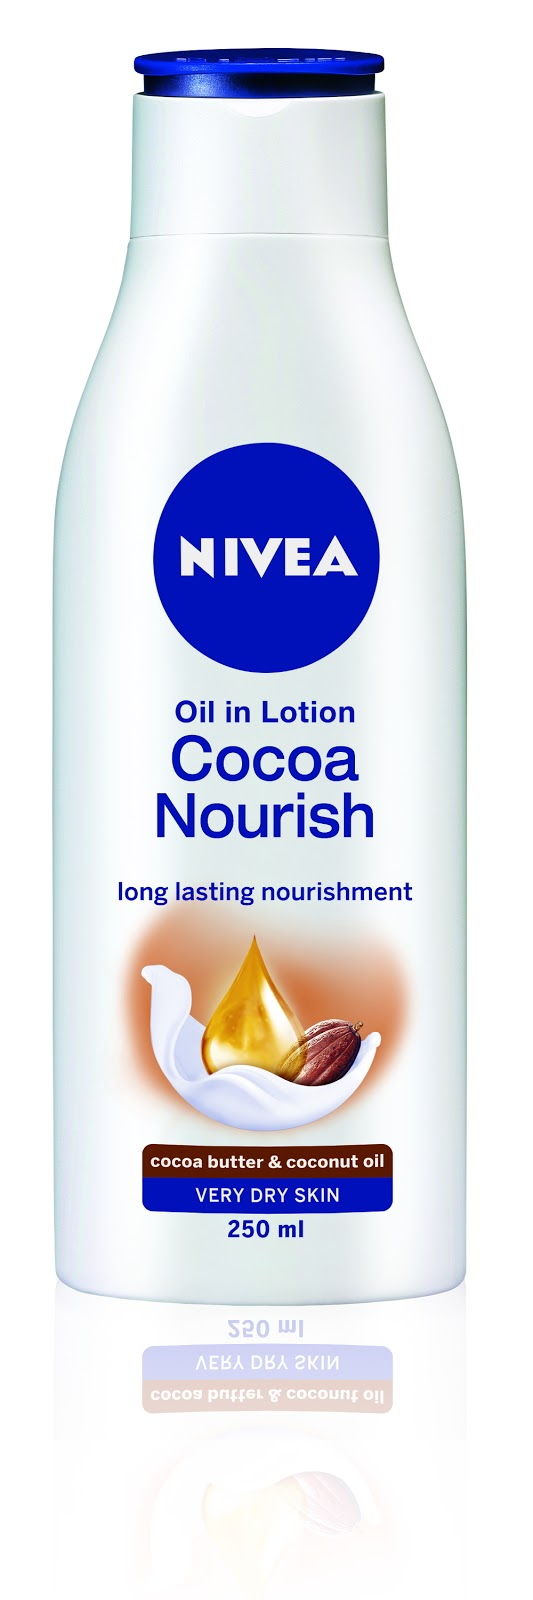 PR:Nivea Oil In Lotion Cocoa Nourish